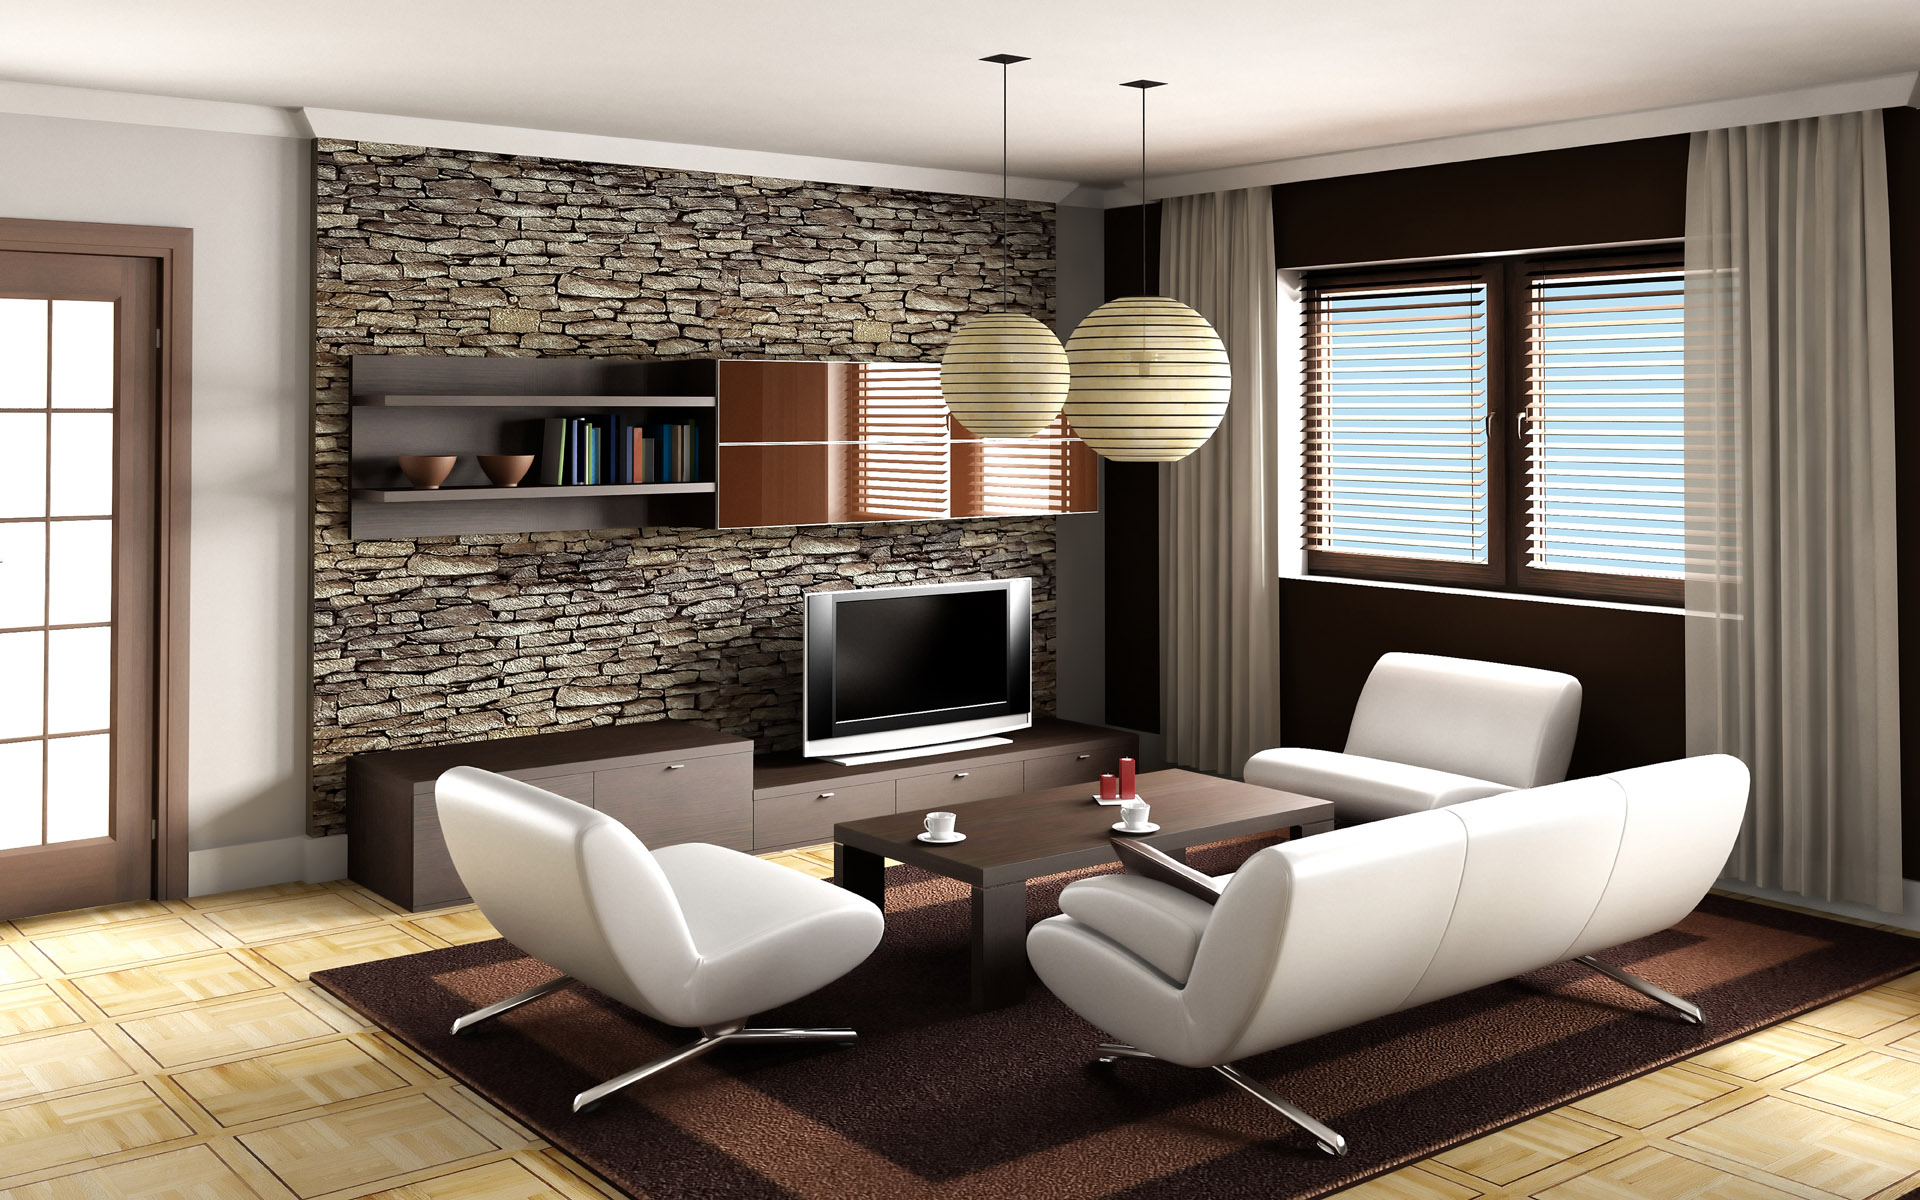 Photos Of Living Room Designs Living Room Furniture Decorating Lighting Ideas With Pictures